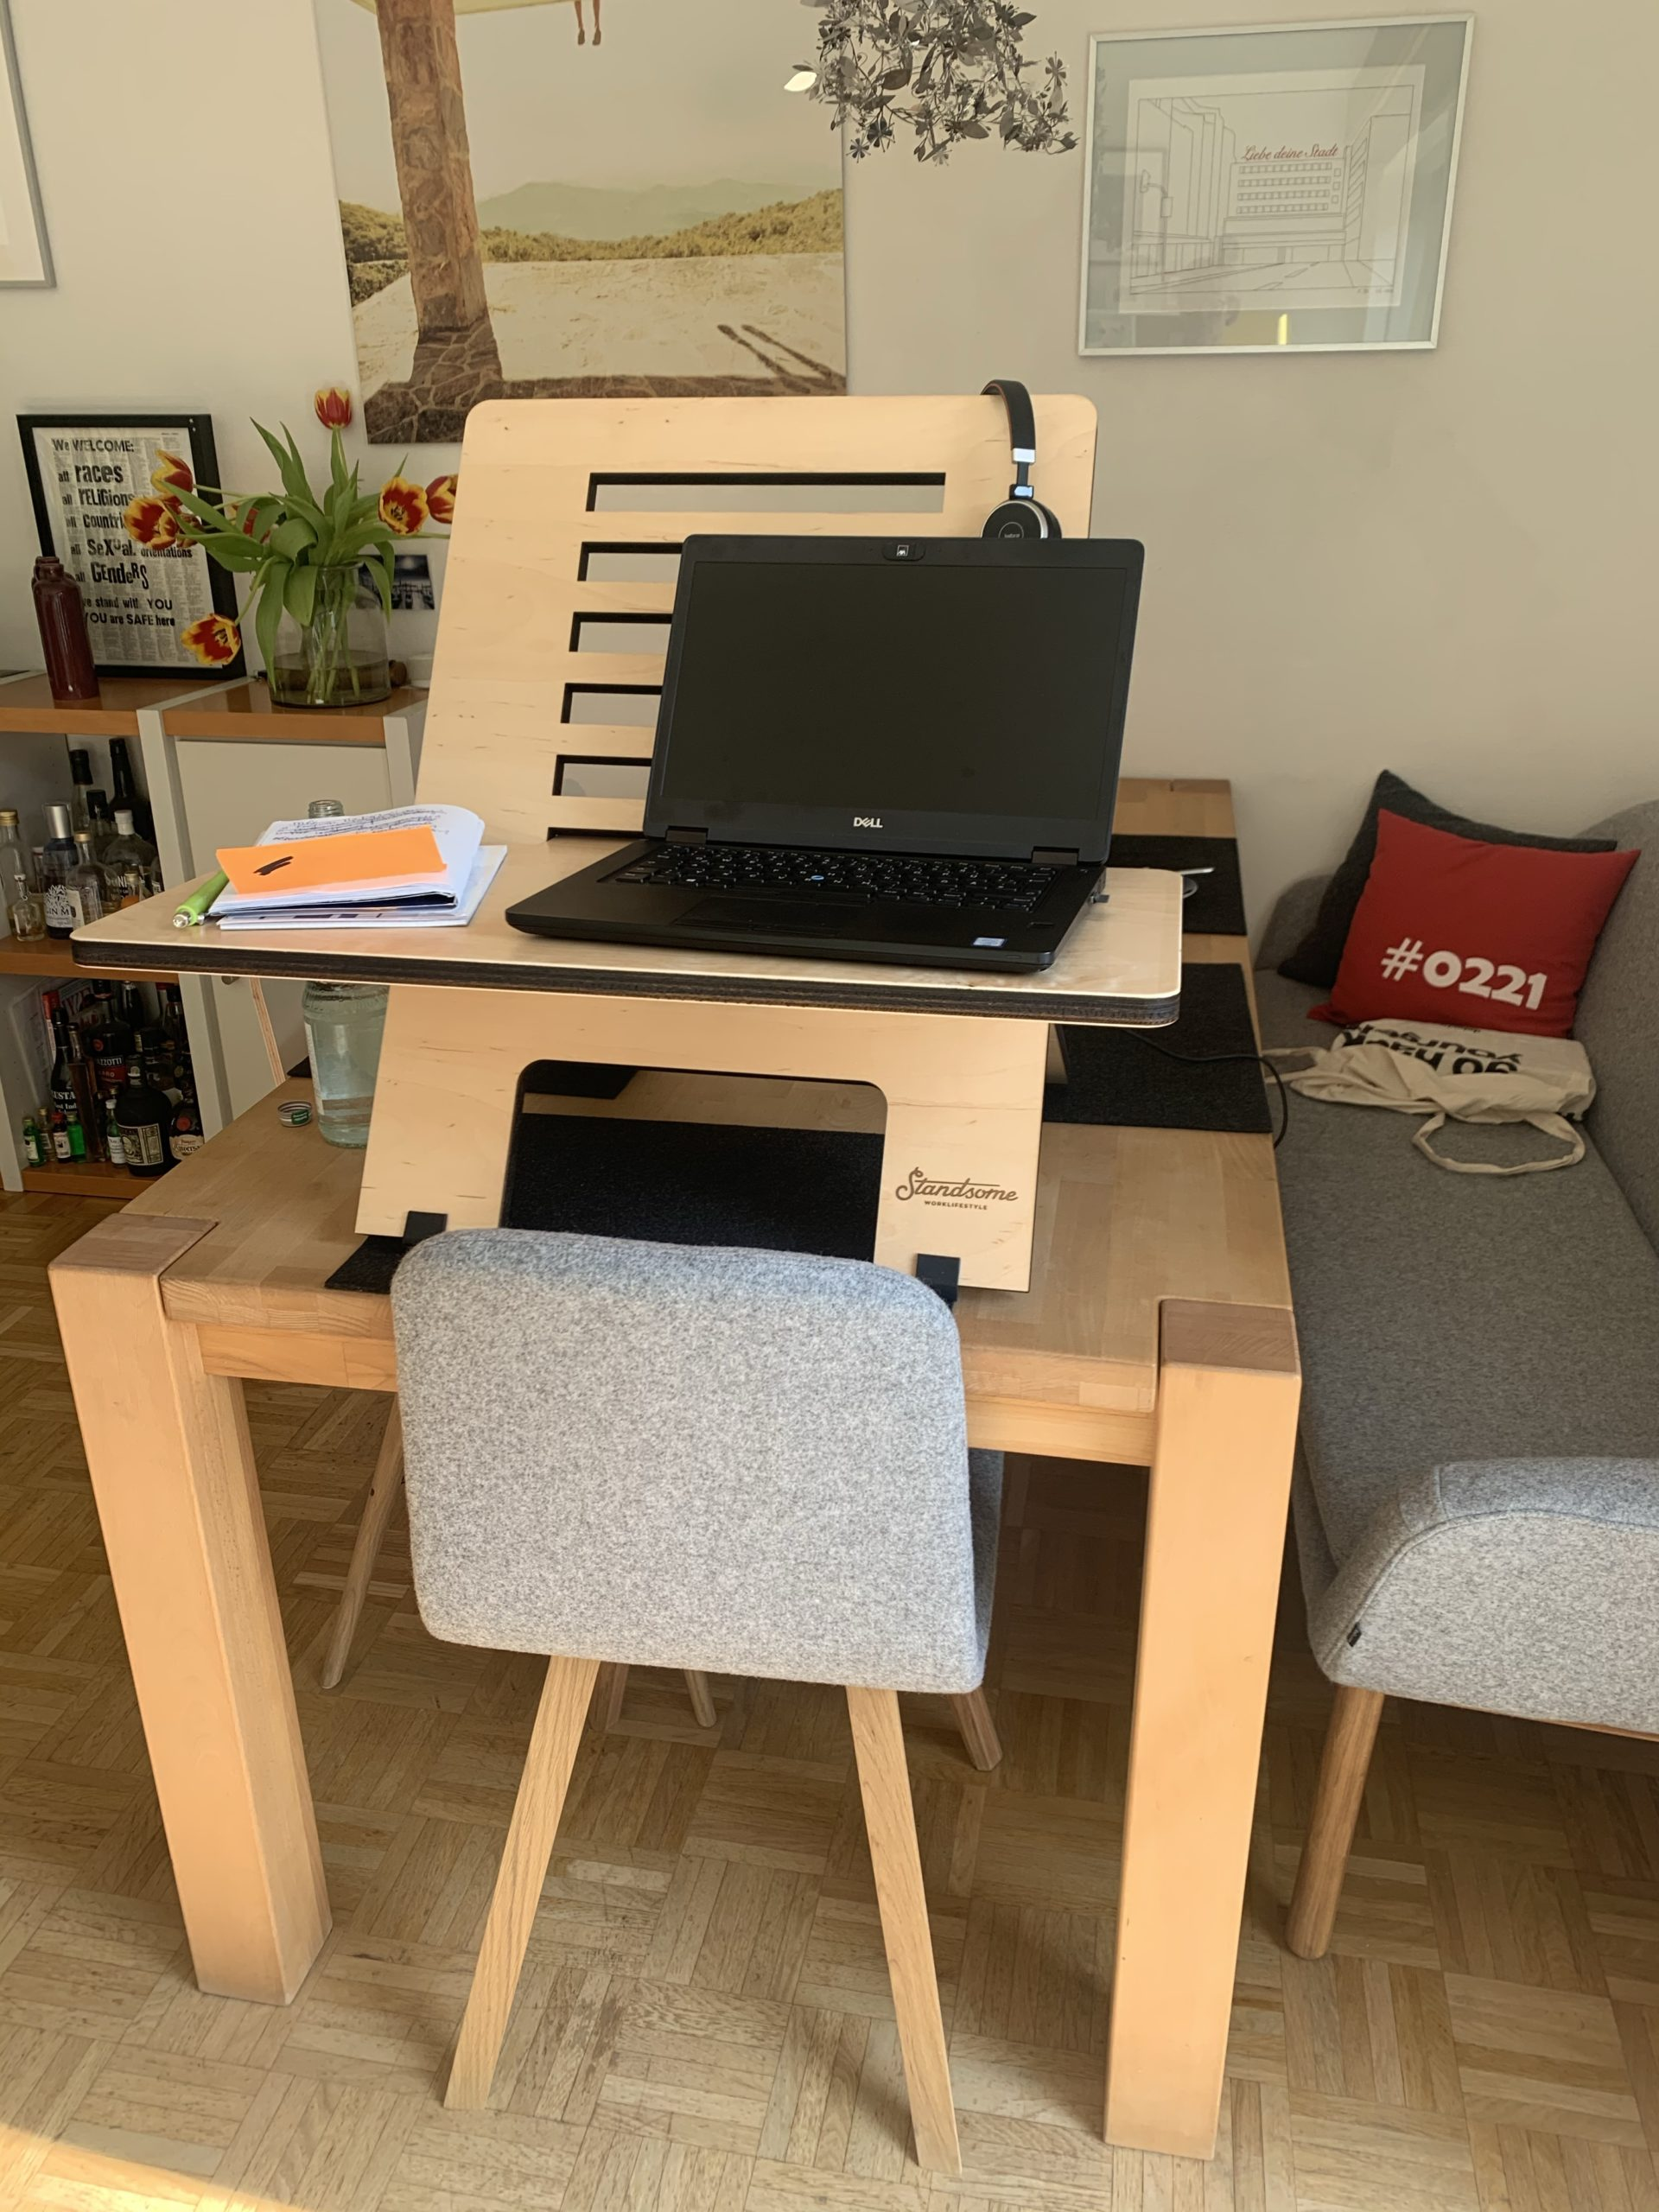 Homeoffice in Corona-Zeiten